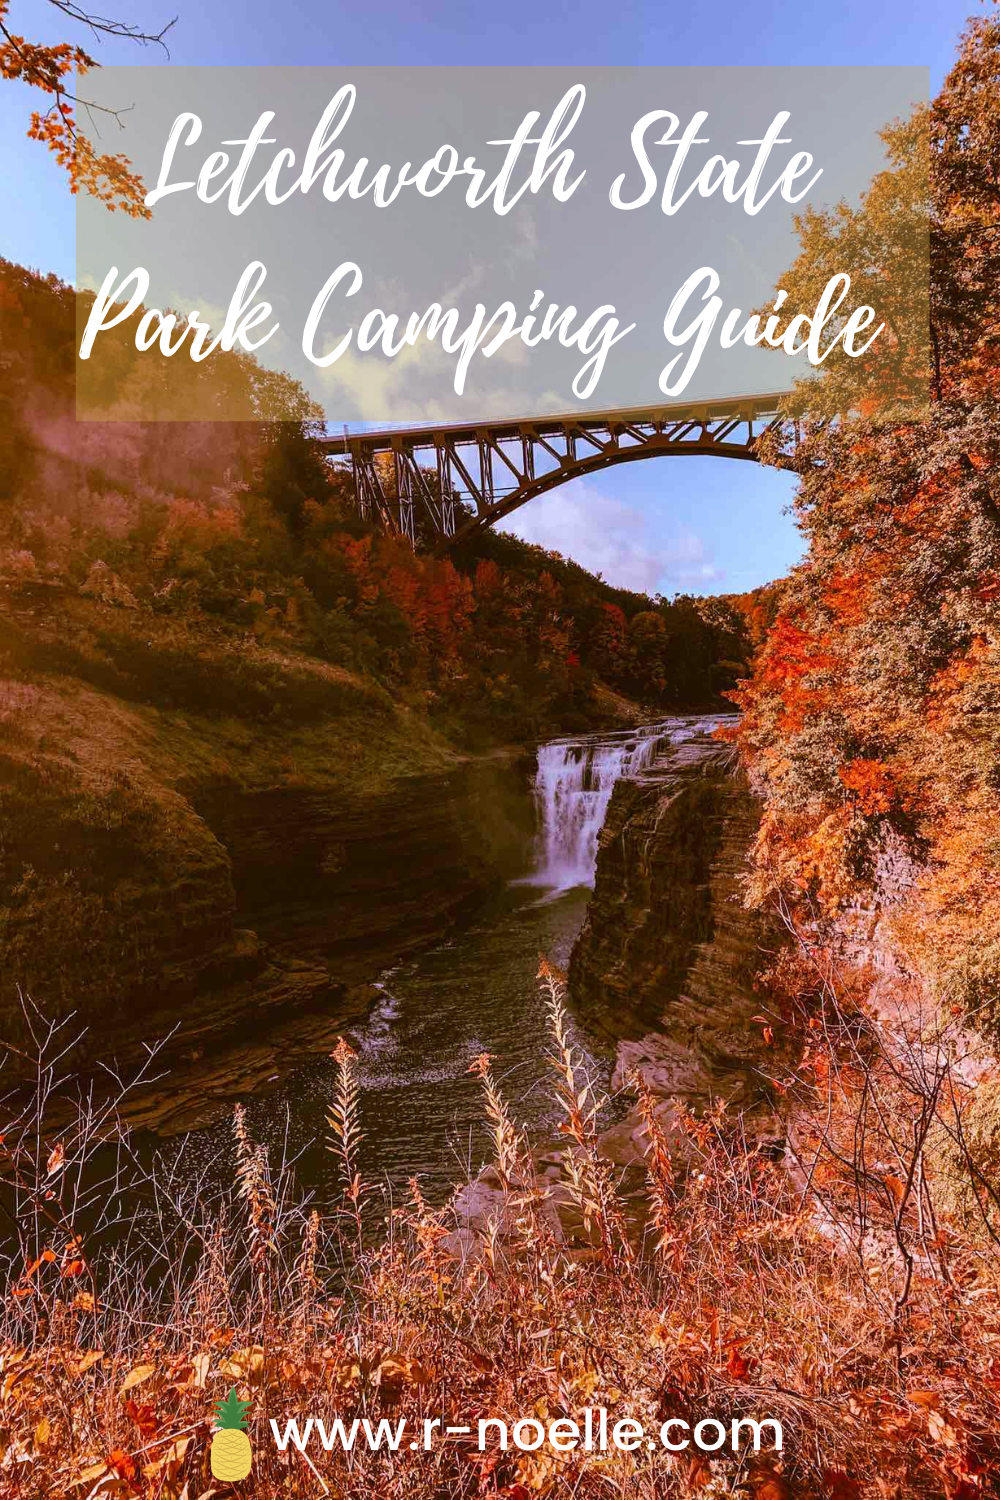 From picking the right trails, knowing which lookouts to not miss, and where to camp, this guide is for you! Knowing what to do in a state park can be a challenge. Learn from my experience of visiting the Grand Canyon of the East to plan your trip.